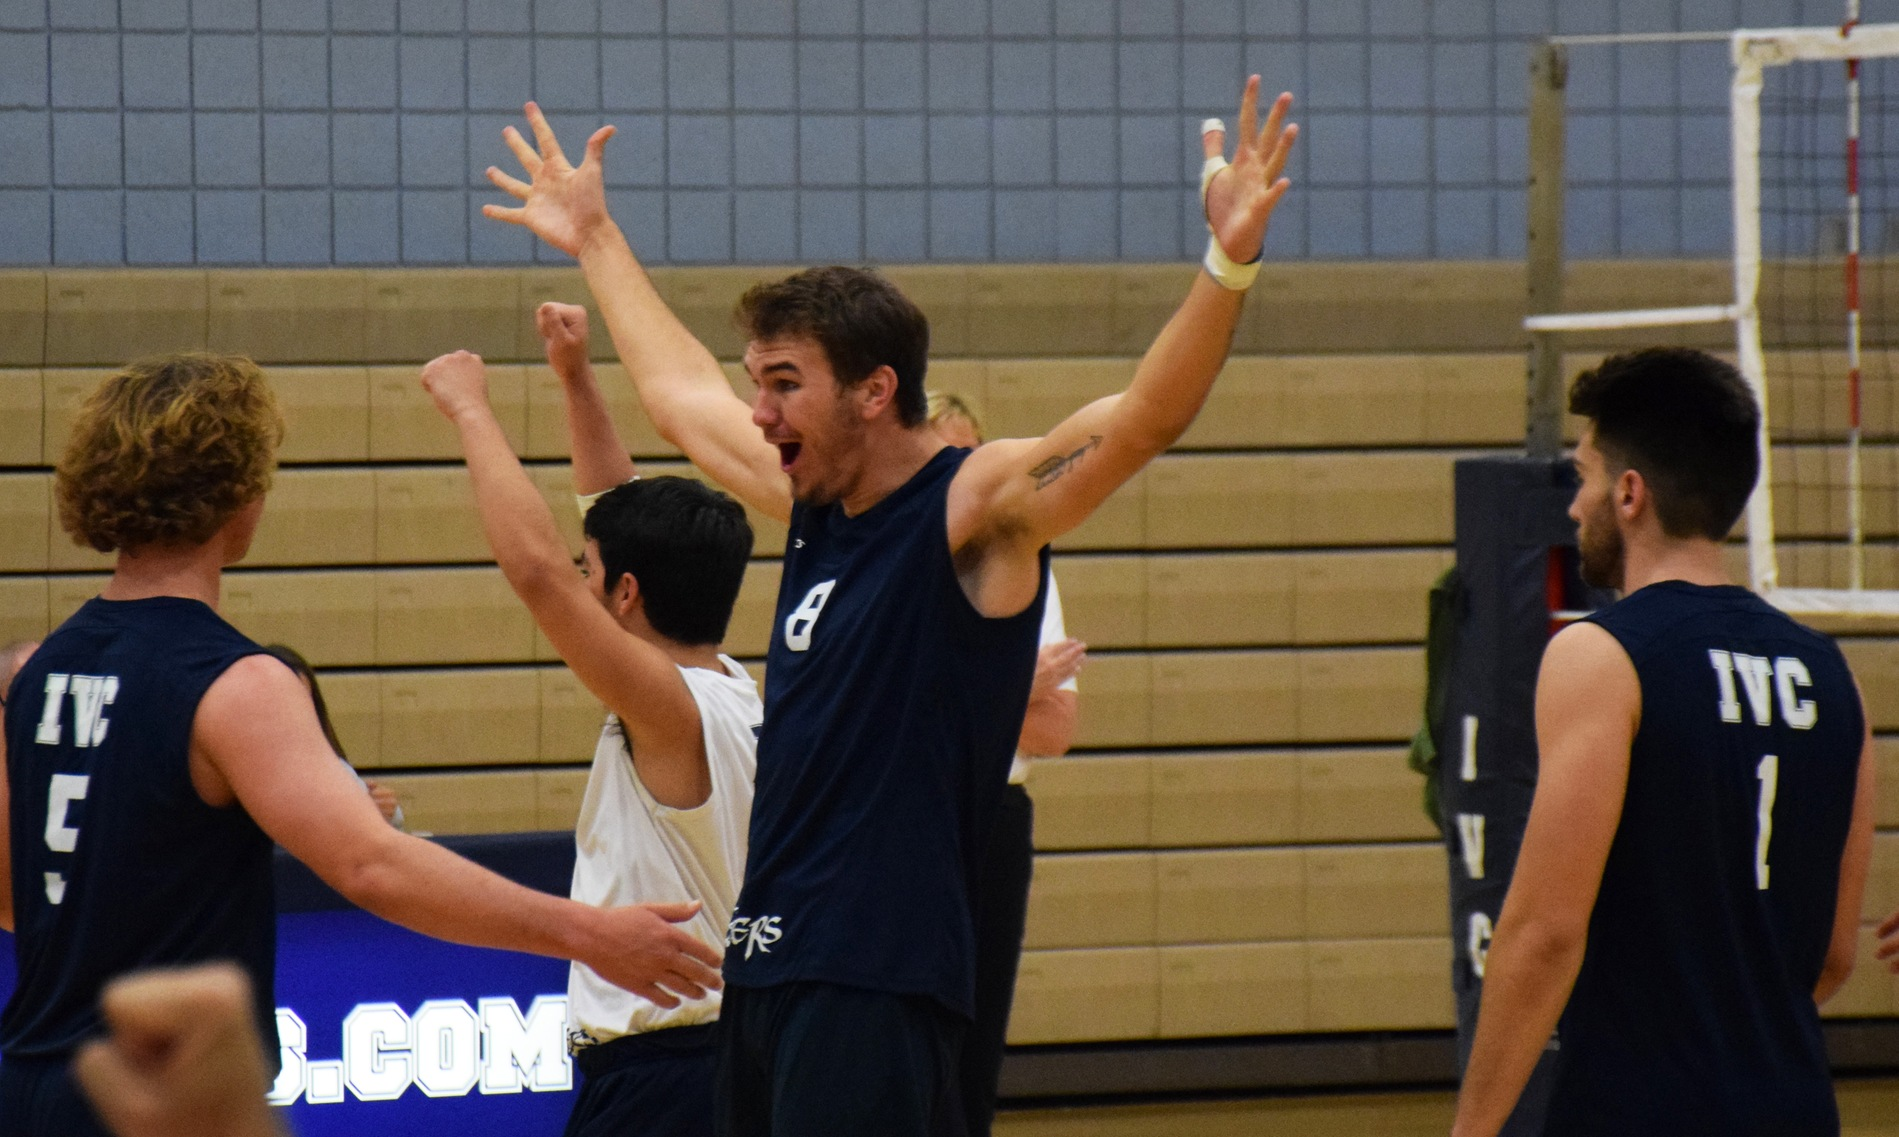 Men's volleyball team has an easy time in sweep at Grossmont